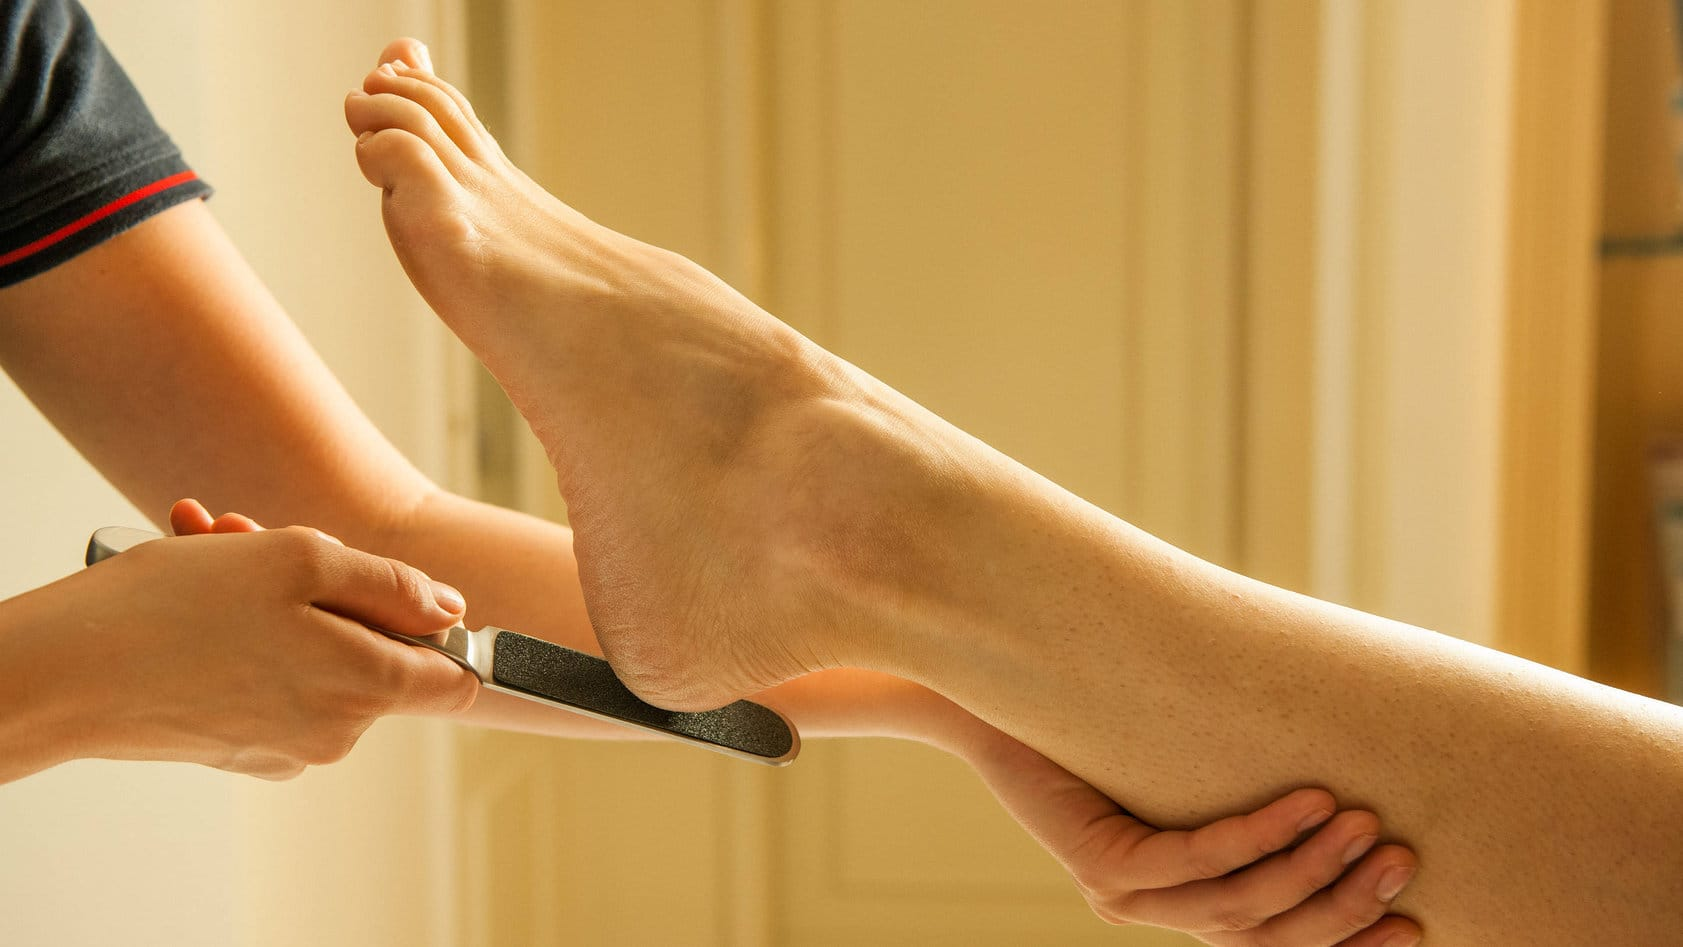 Mouth Wash for Dry Feet. Impossible? Check it Out!